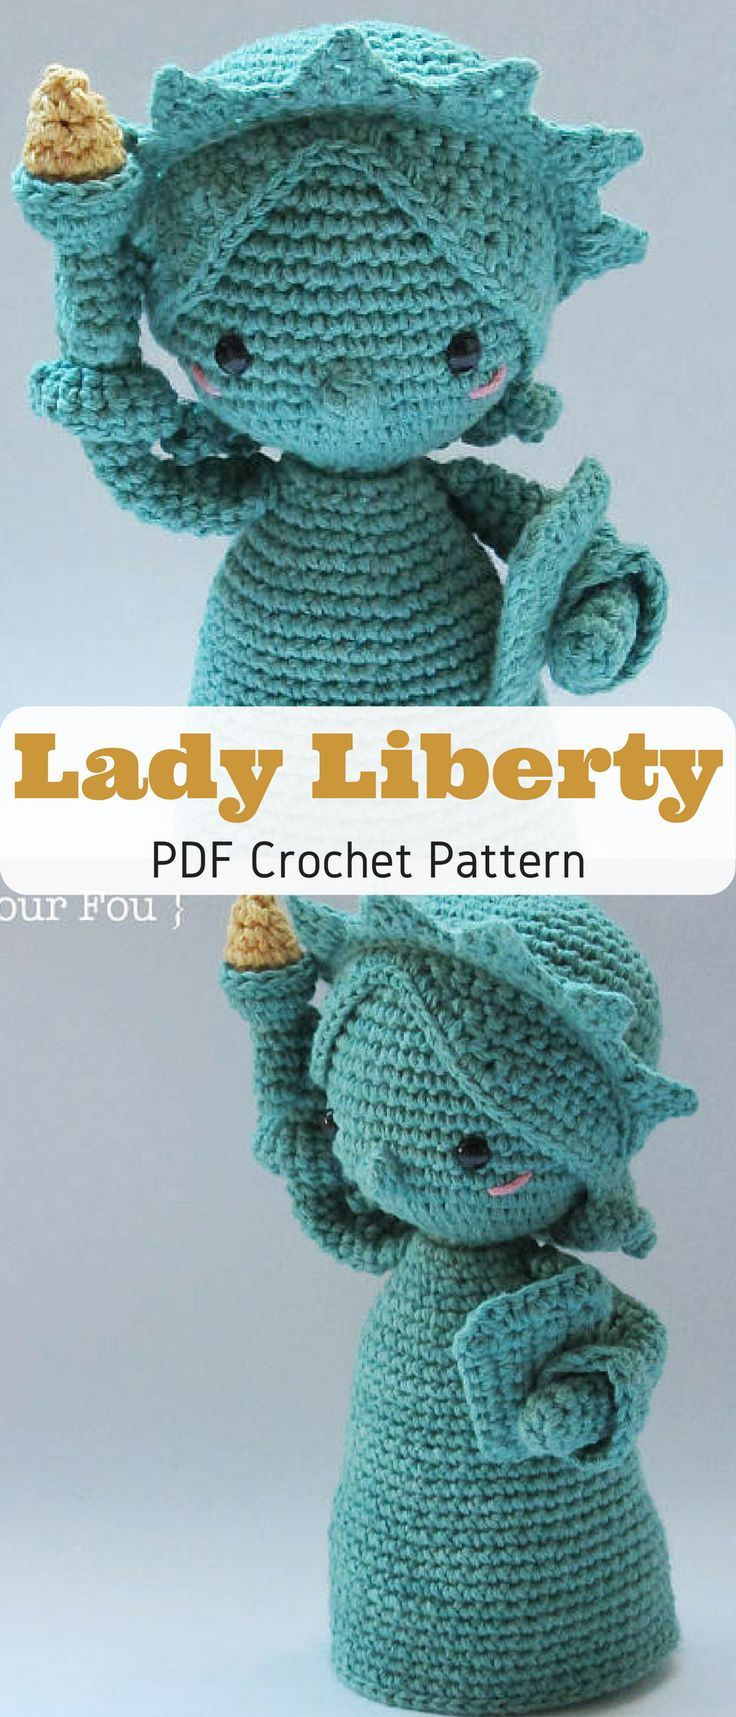 Sweetest Lady Liberty ever! Make your own little stuffed Lady Liberty toy with this crochet pattern #ladyliberty #ad #crochetpattern #stuffedtoyspatterns